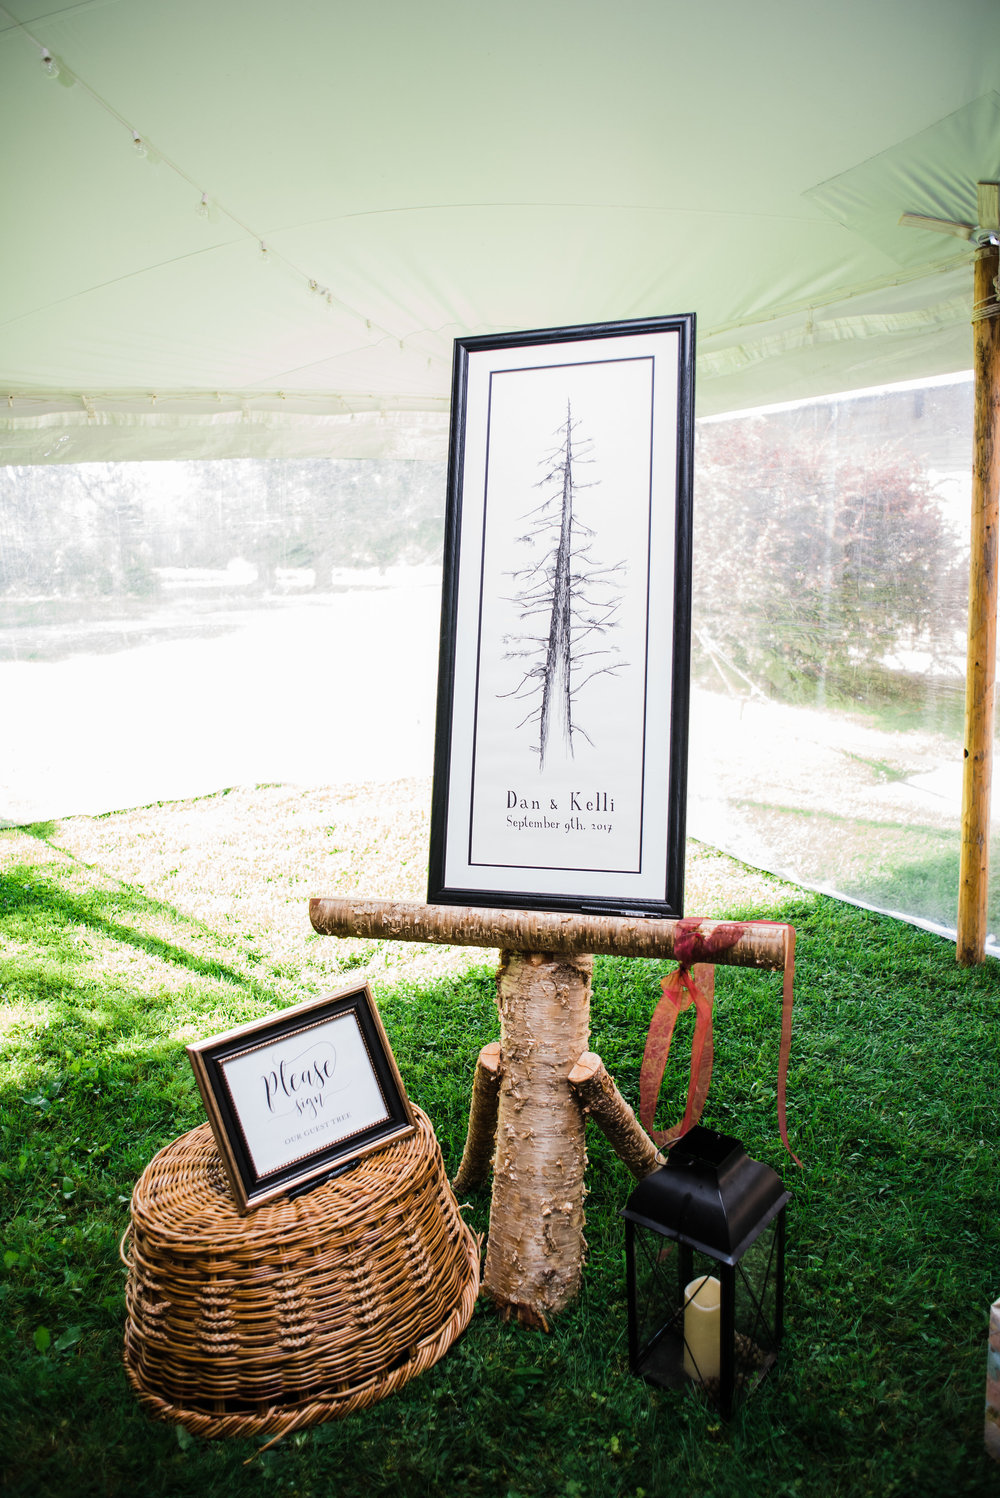 birch_log_wicker_basket_wedding_signs.jpg